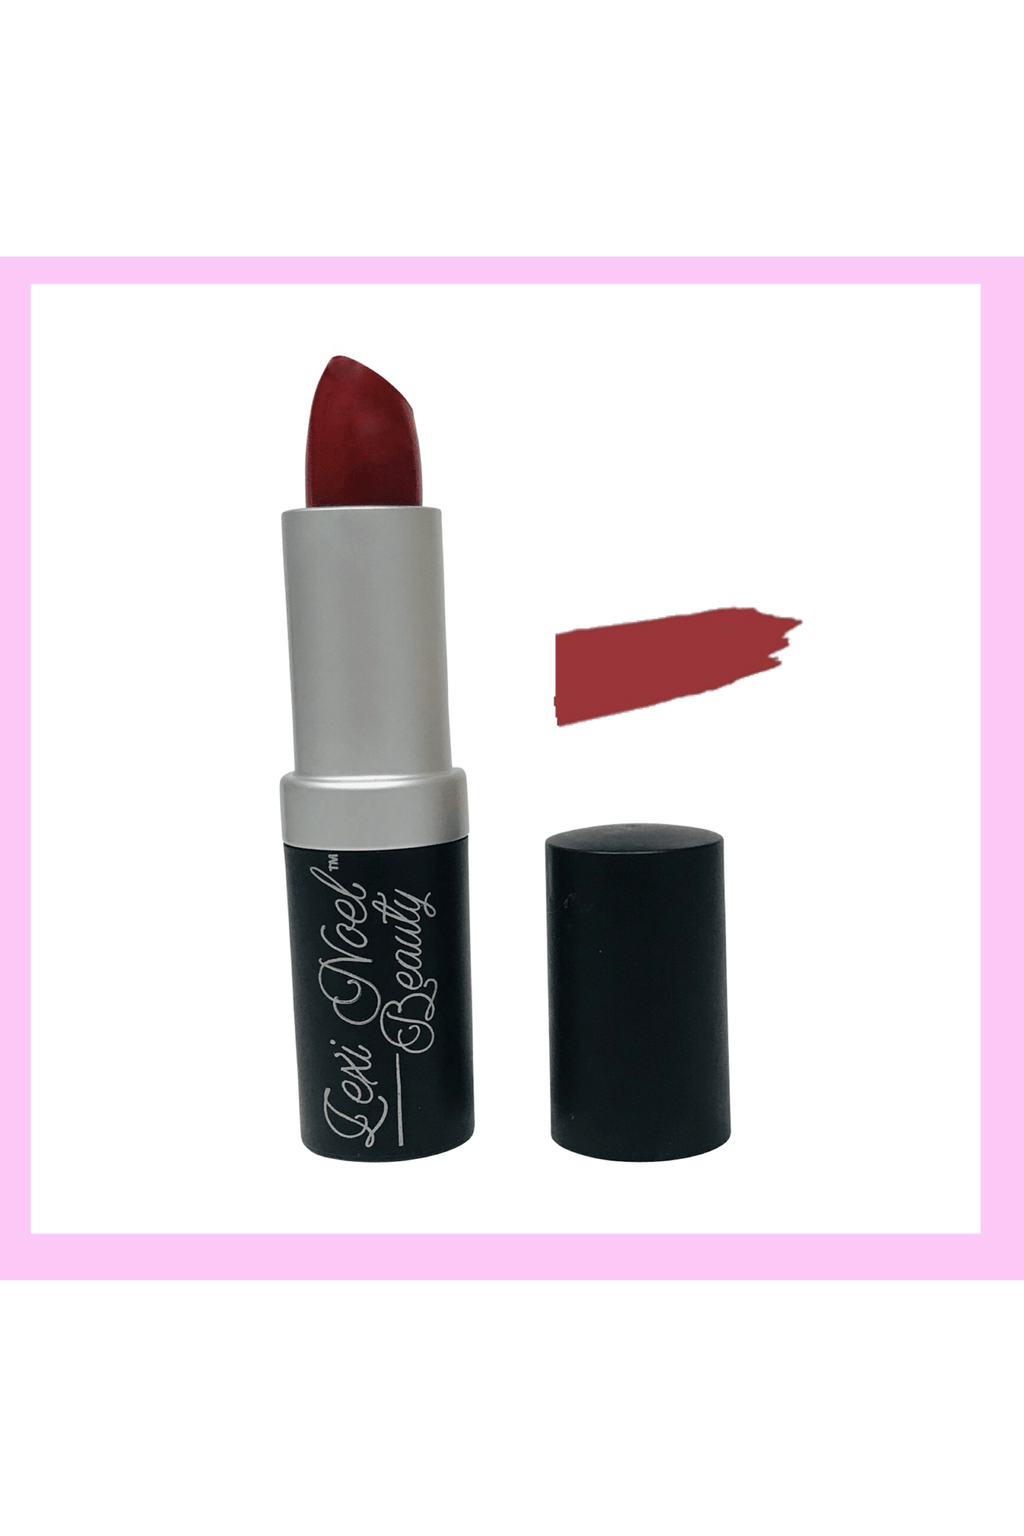 True Love Lipstick Color - Himelhoch's